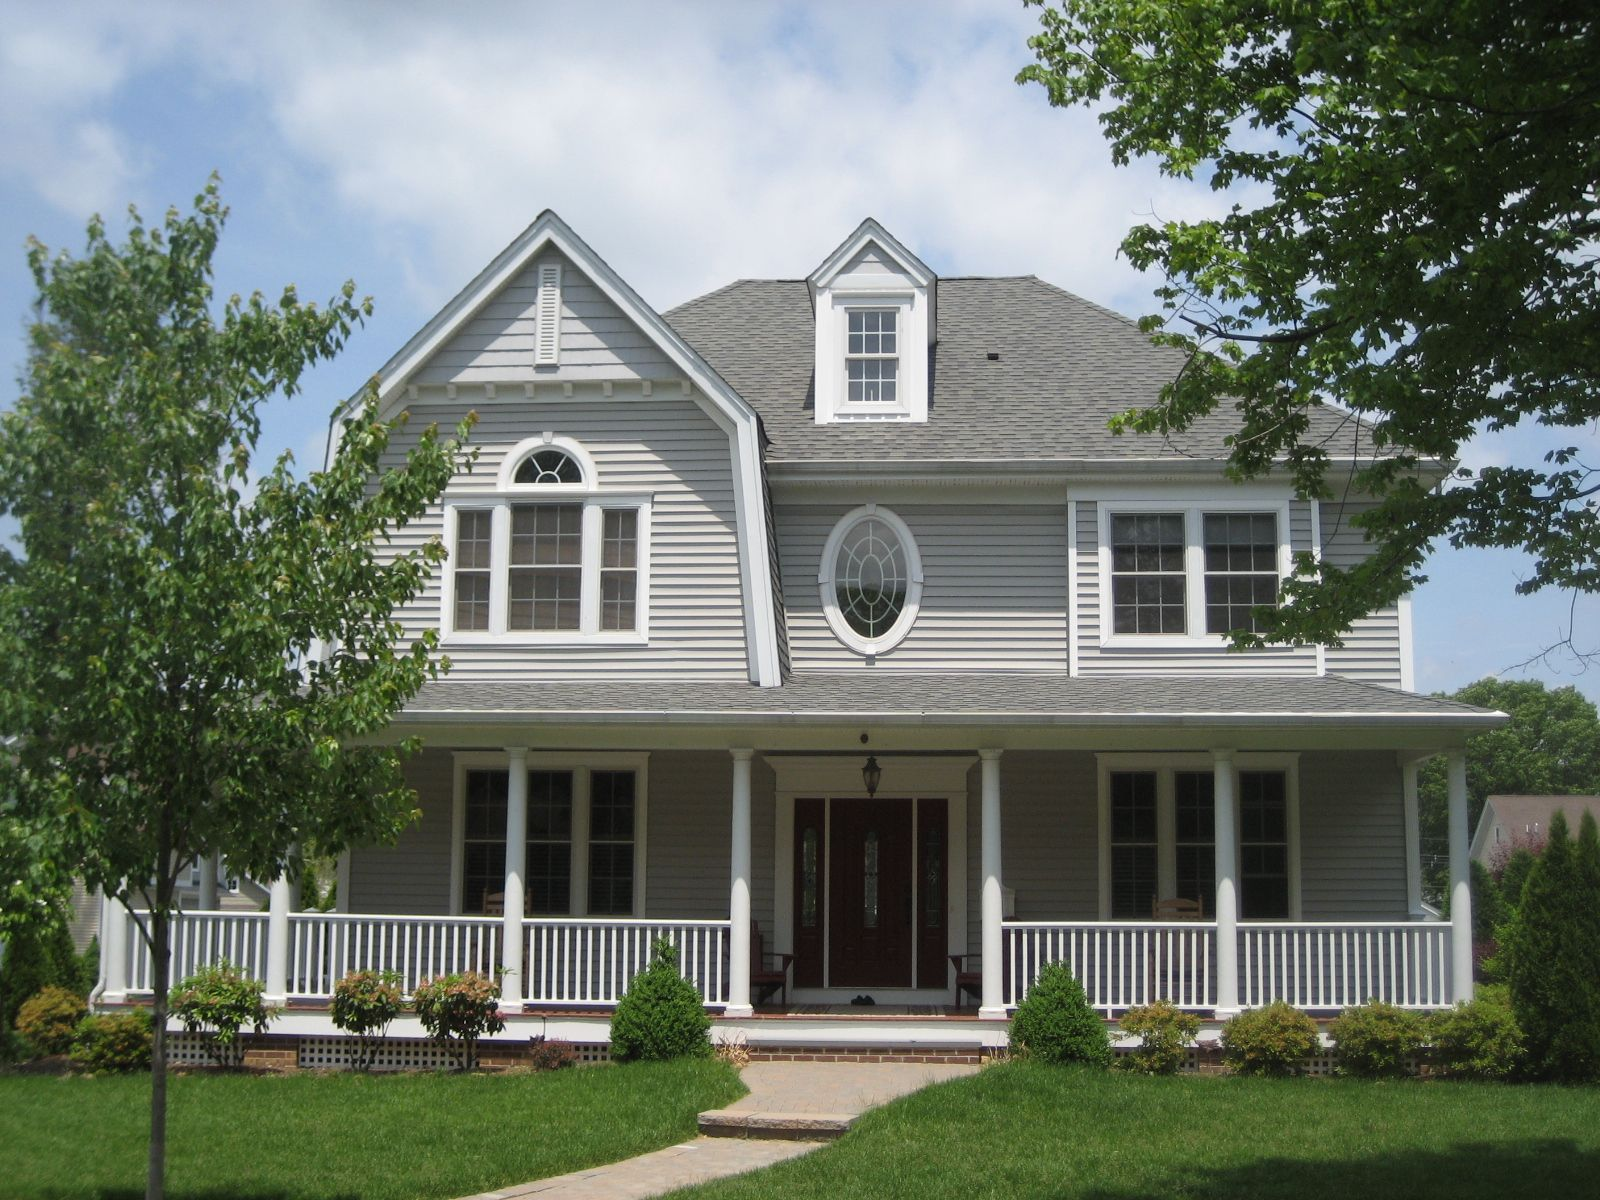 A new home with a gambrel roof dormer window and wrap around porch